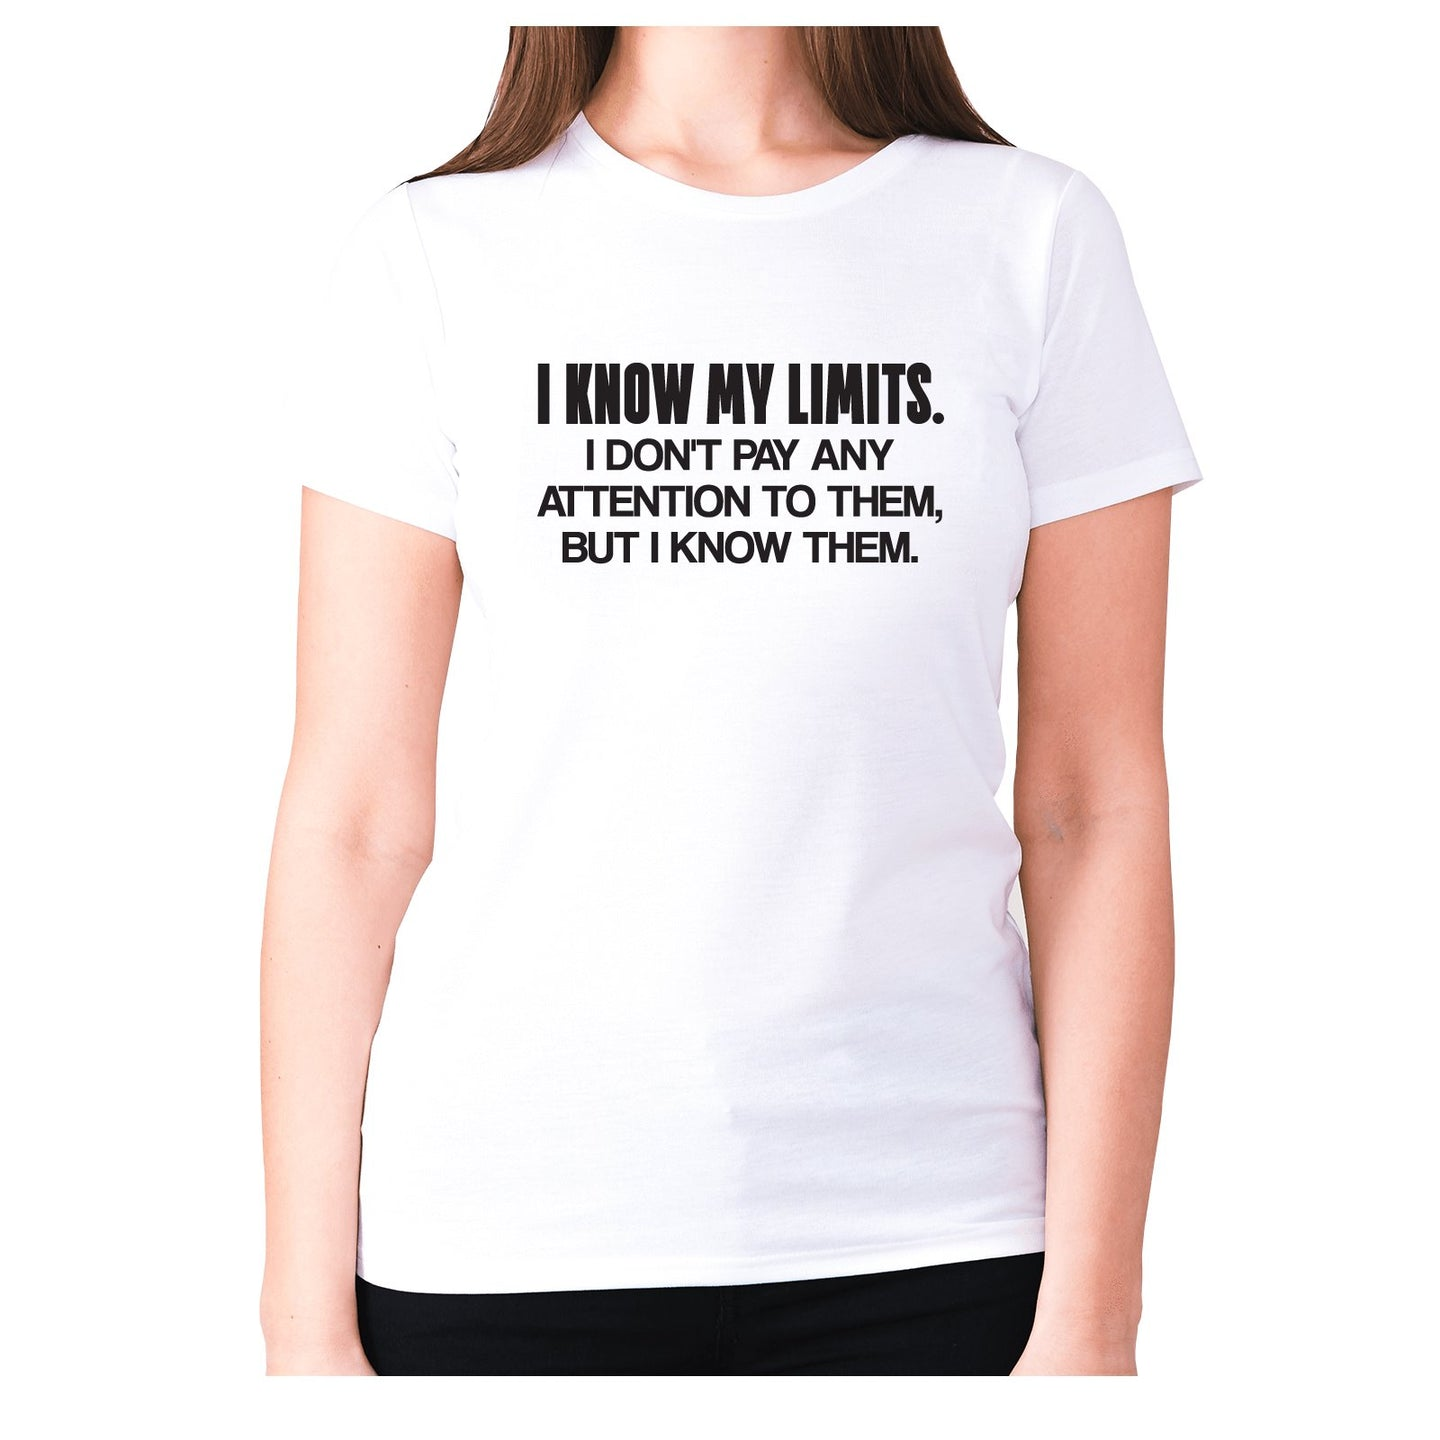 I know my limits. I don't pay any attention to them, but i know them - women's premium t-shirt - White / S - Graphic Gear